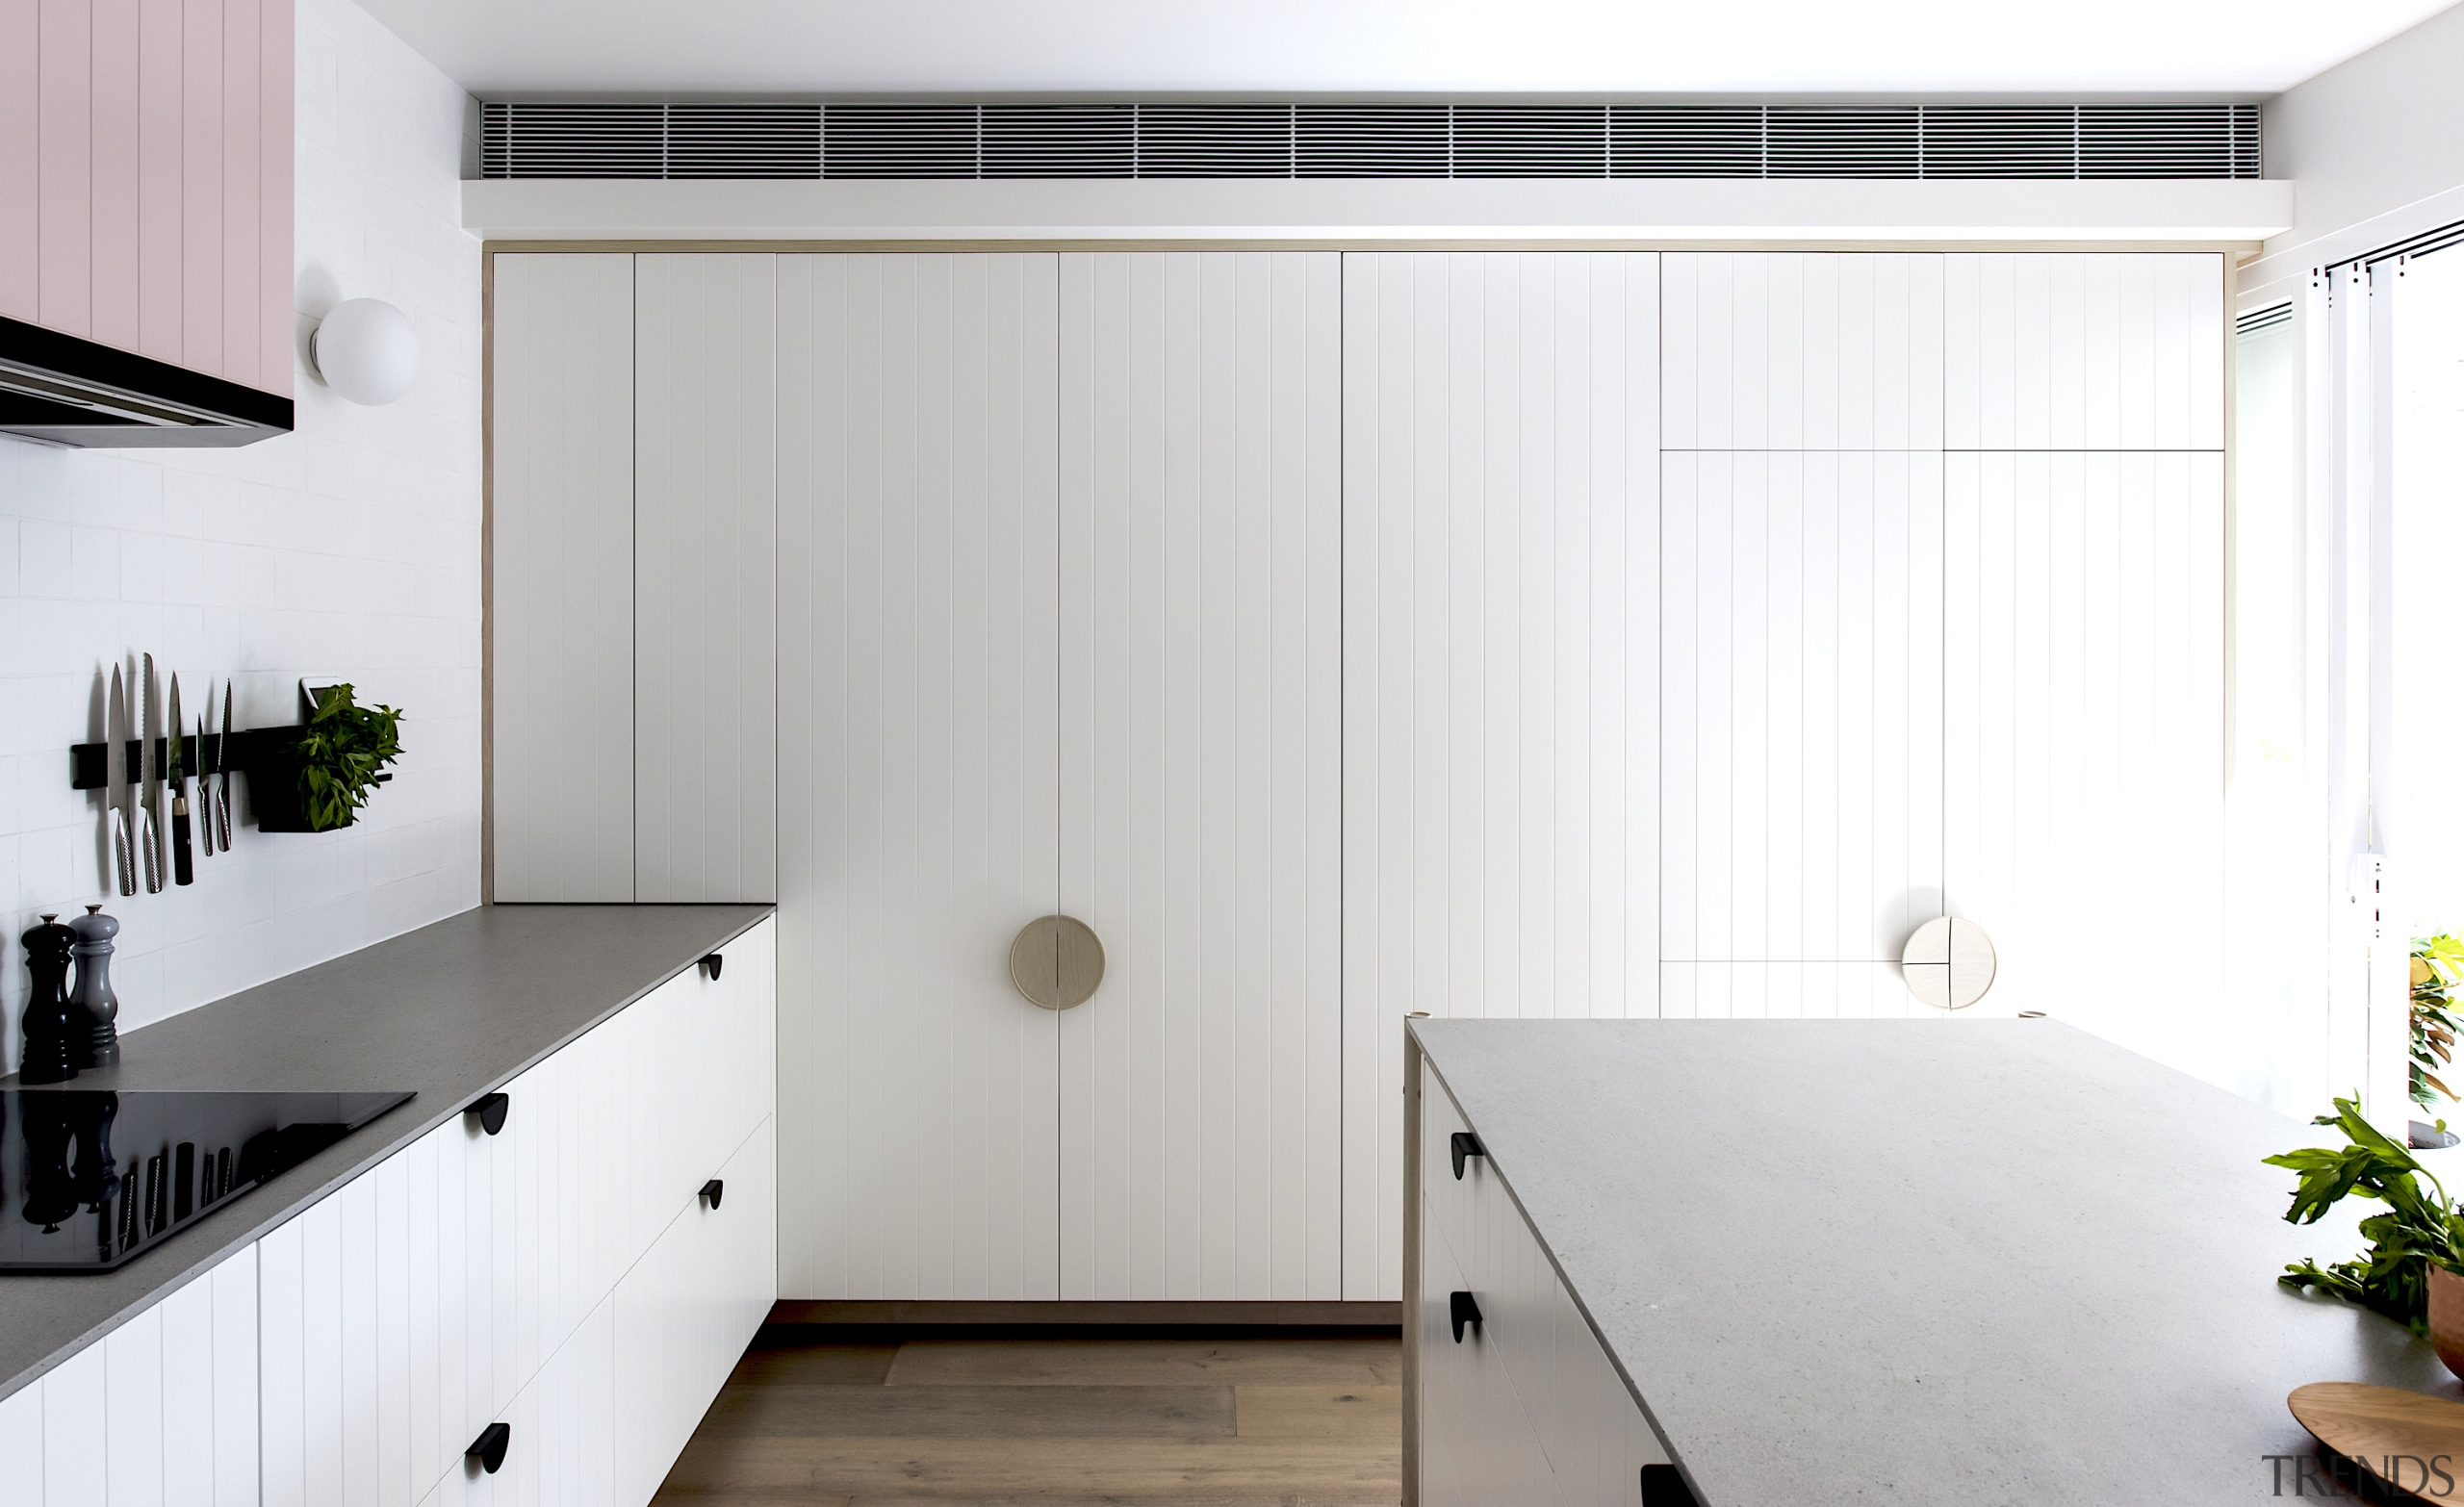 Behind closed doors – a wall of cabinetry white